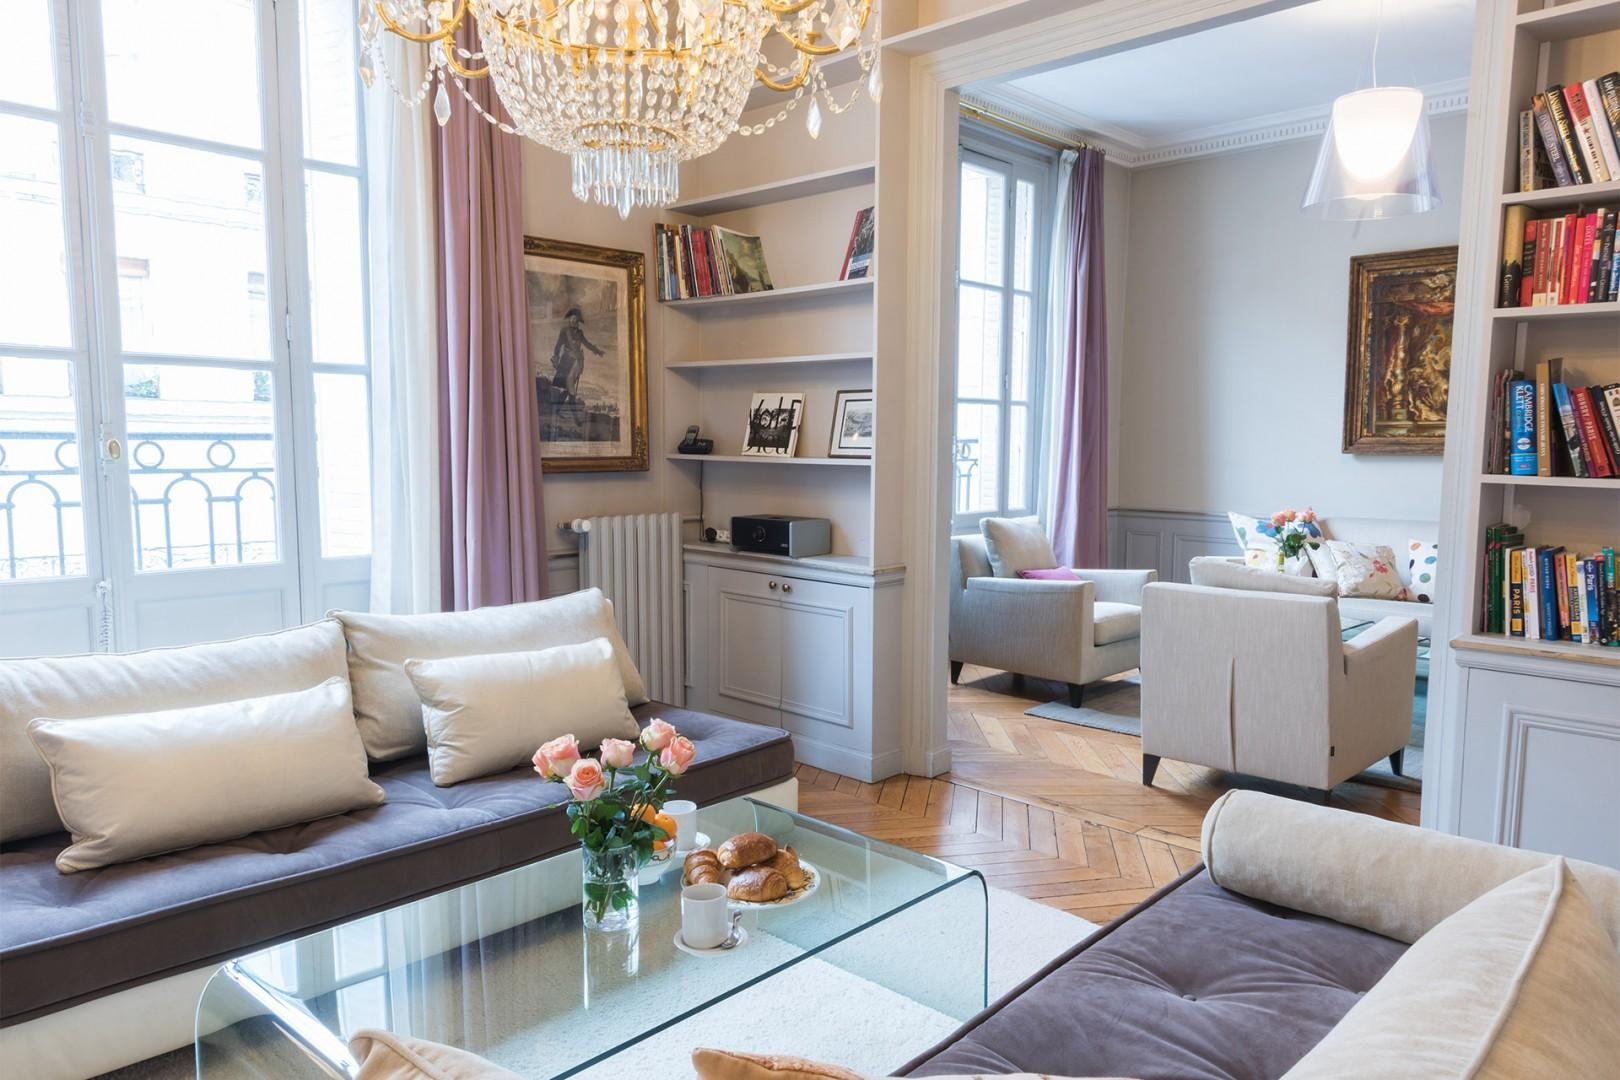 Make yourself at home in this elegant and spacious apartment.